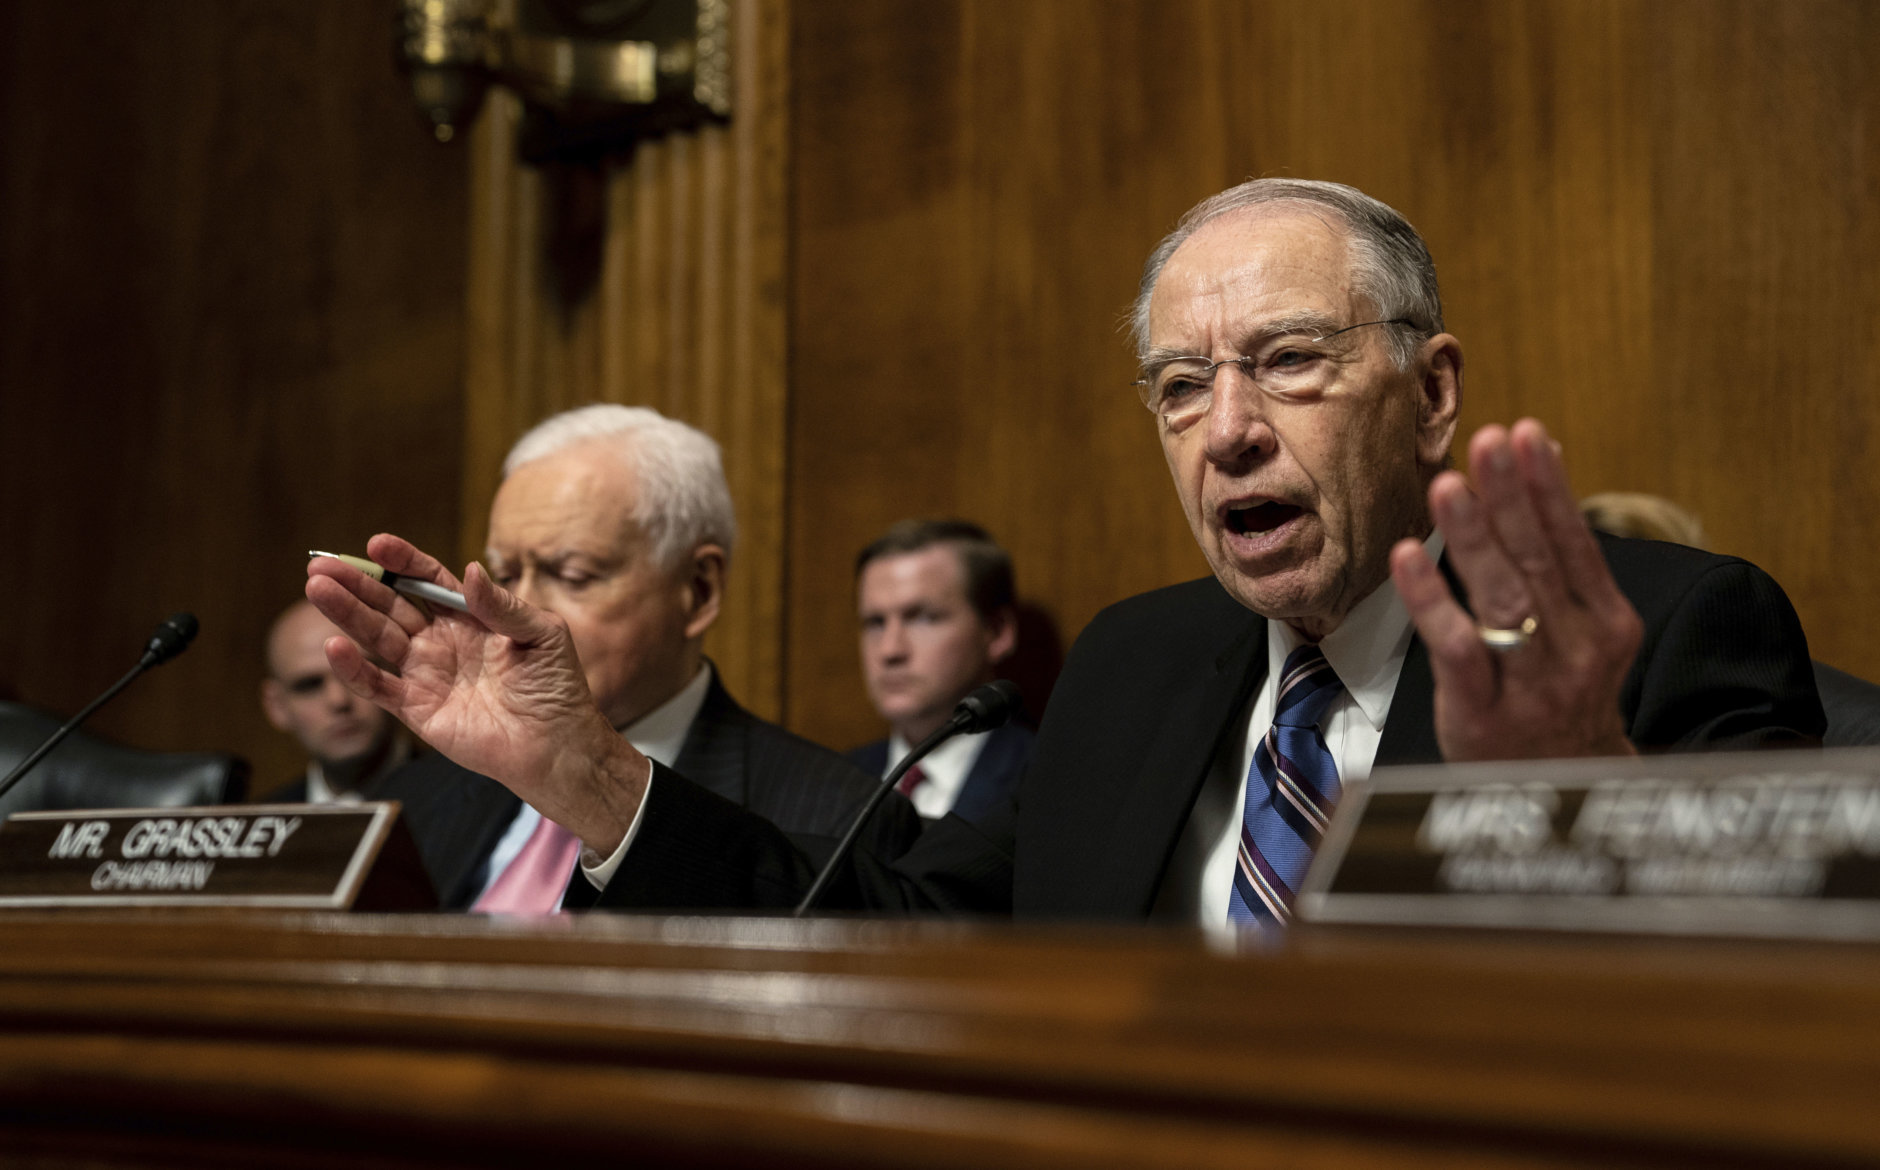 Senate Judiciary Chairman Chuck Grassley, R-Iowa., talks during a Senate Judiciary Committee hearing with Christine Blasey Ford, Thursday, Sept. 27, 2018 on Capitol Hill in Washington.   (Erin Schaff/The New York Times via AP, Pool)